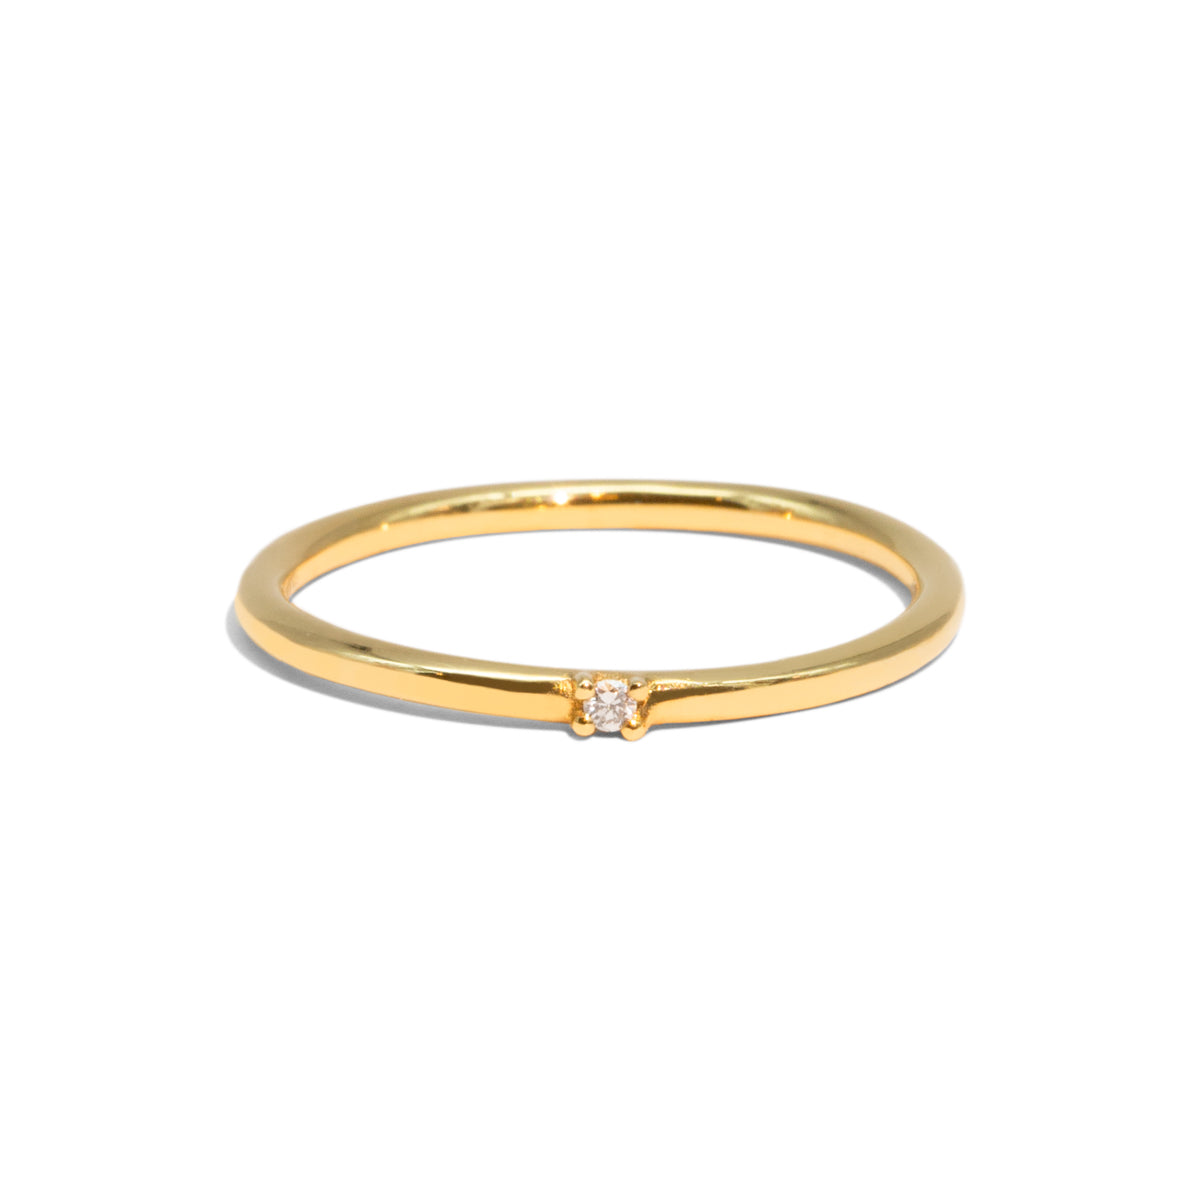 The Gold Diamond Speck Ring